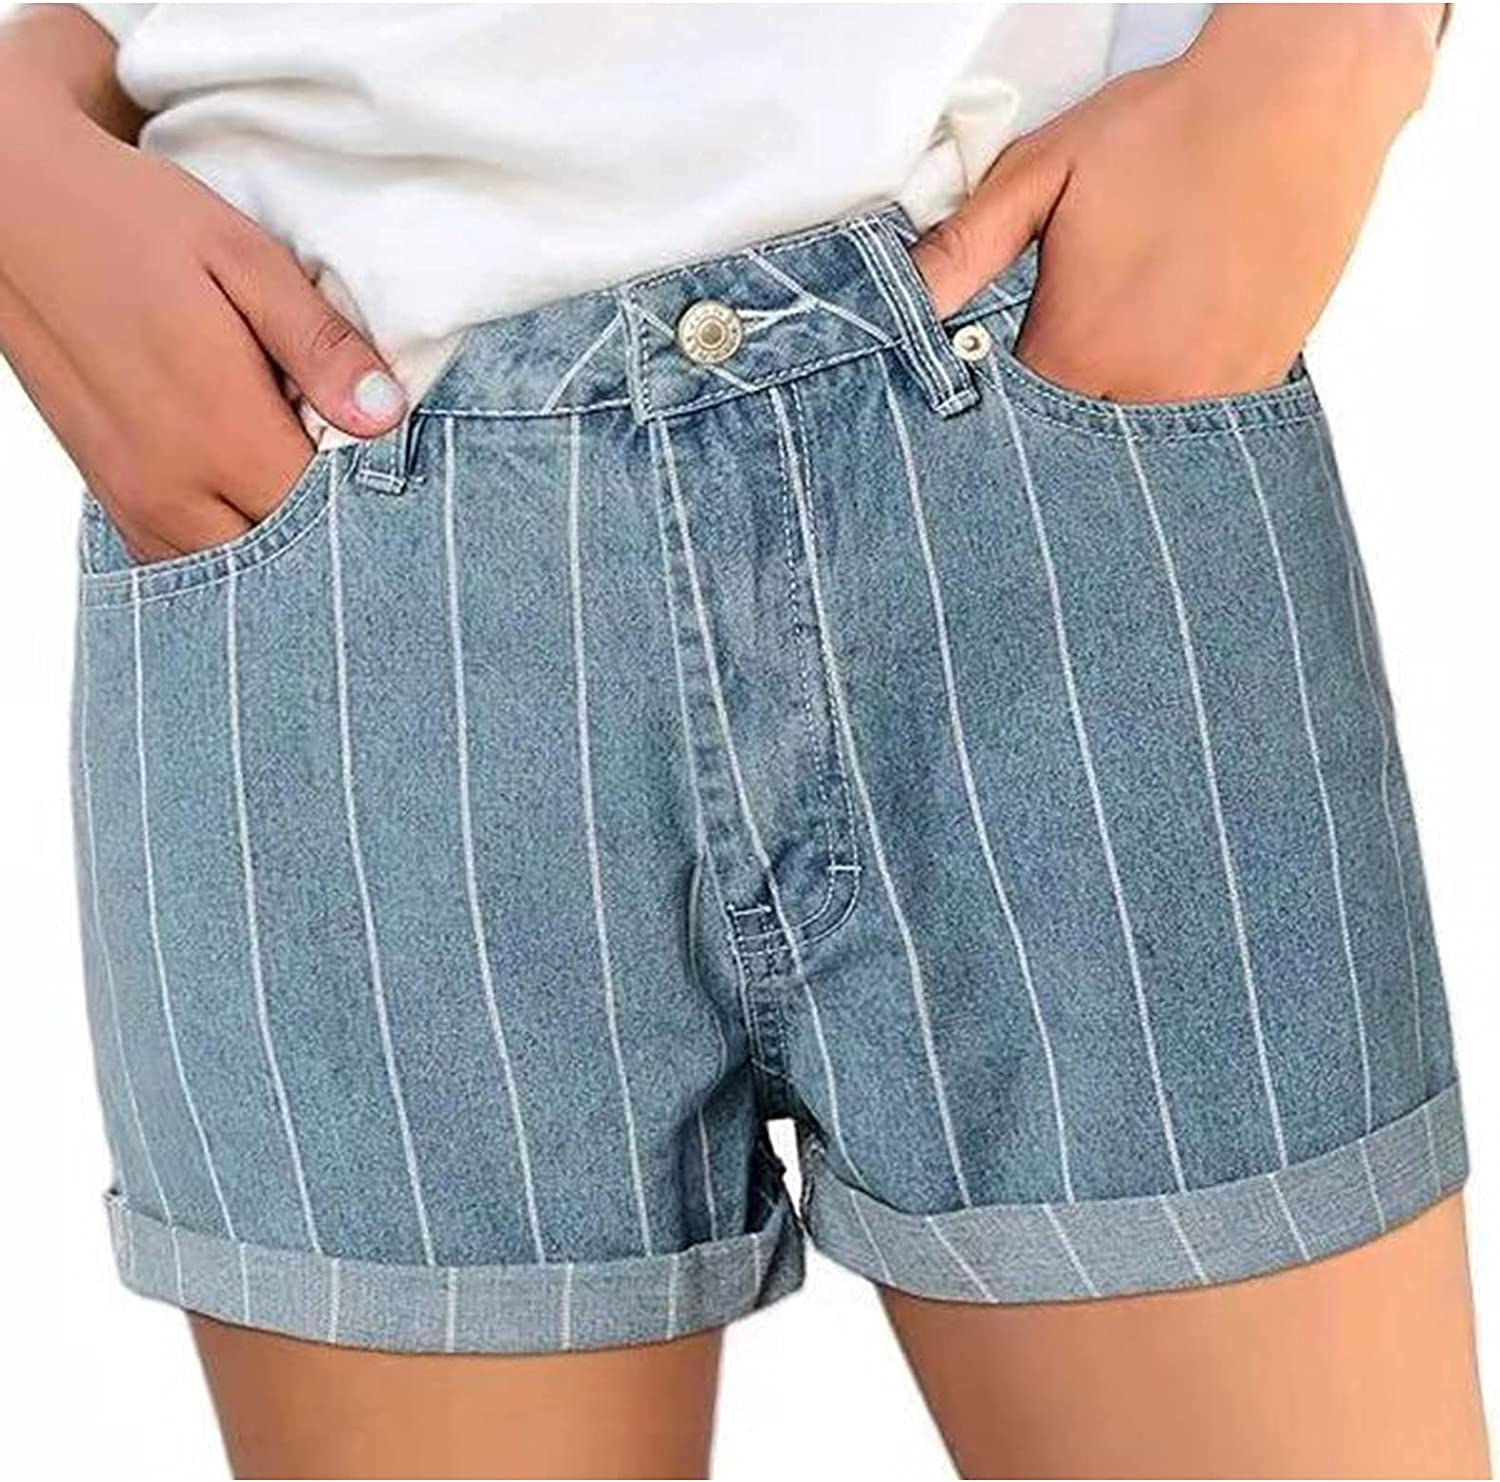 ESULOMP Women's Casual Jeans Shorts Stretchy Distressed Denim Shorts Slim Comfy Jeans Pants with Pockets